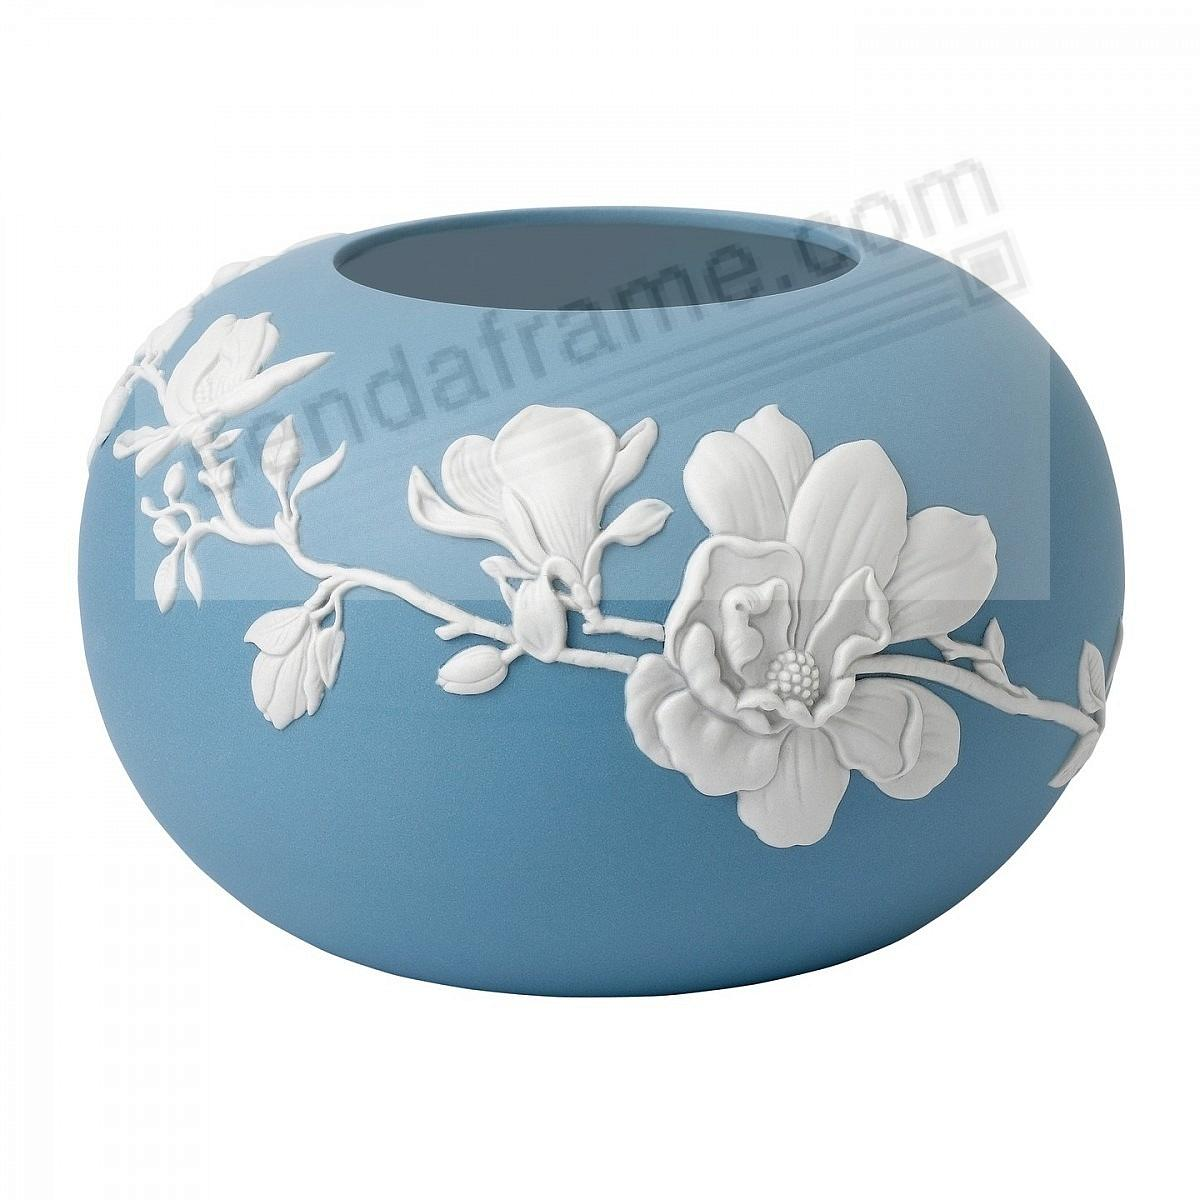 Blue Jasperware MAGNOLIA BLOSSOM ROSE 6-in BOWL by Wedgwood®